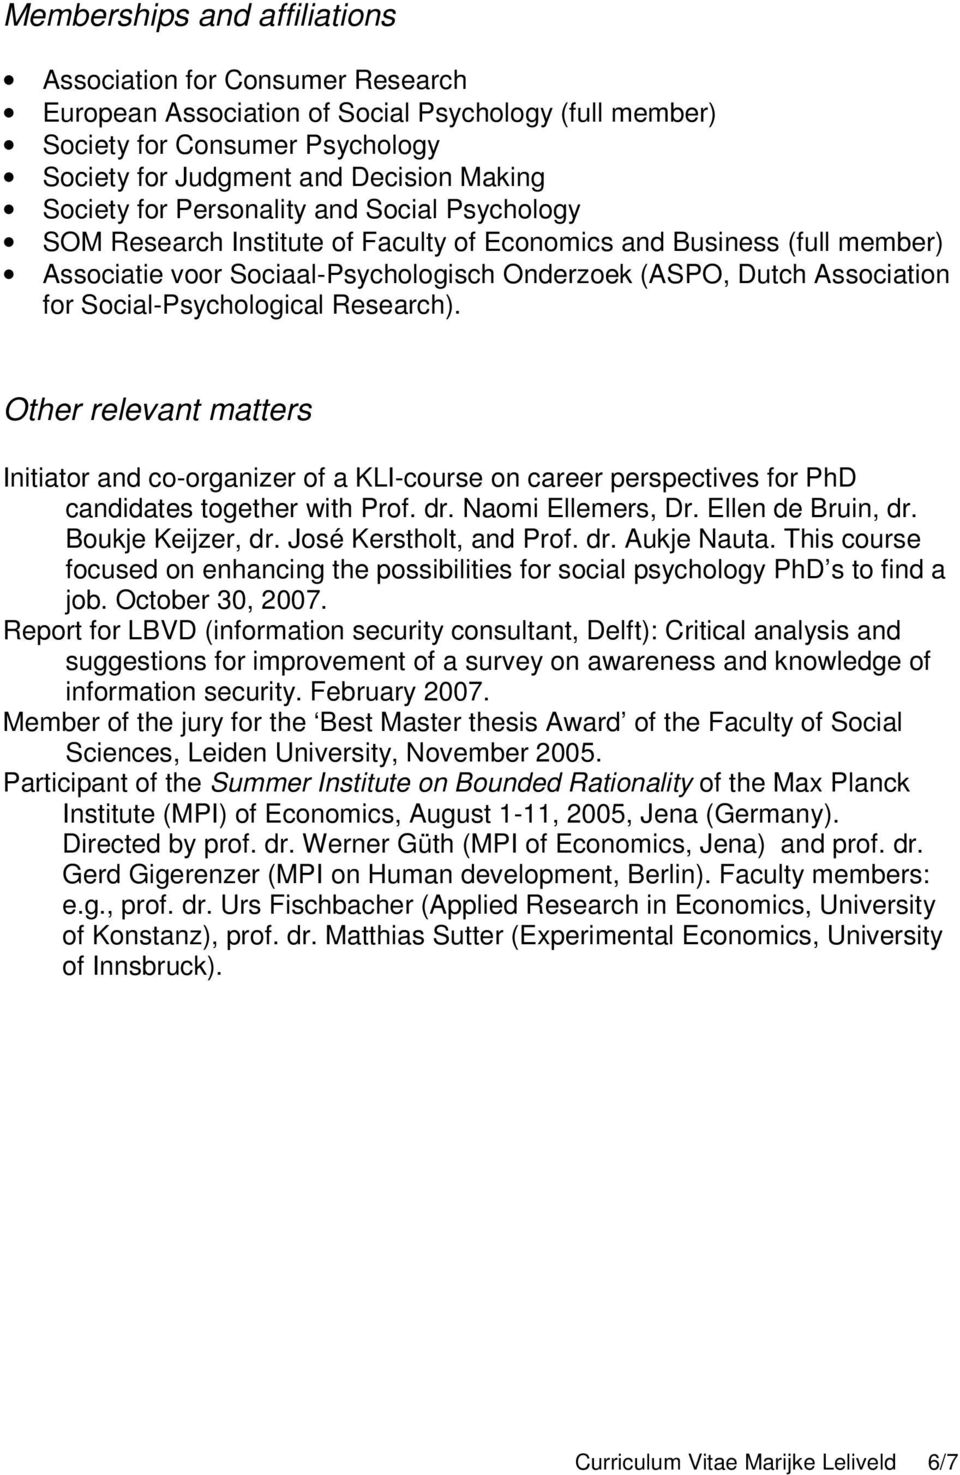 Social-Psychological Research). Other relevant matters Initiator and co-organizer of a KLI-course on career perspectives for PhD candidates together with Prof. dr. Naomi Ellemers, Dr.